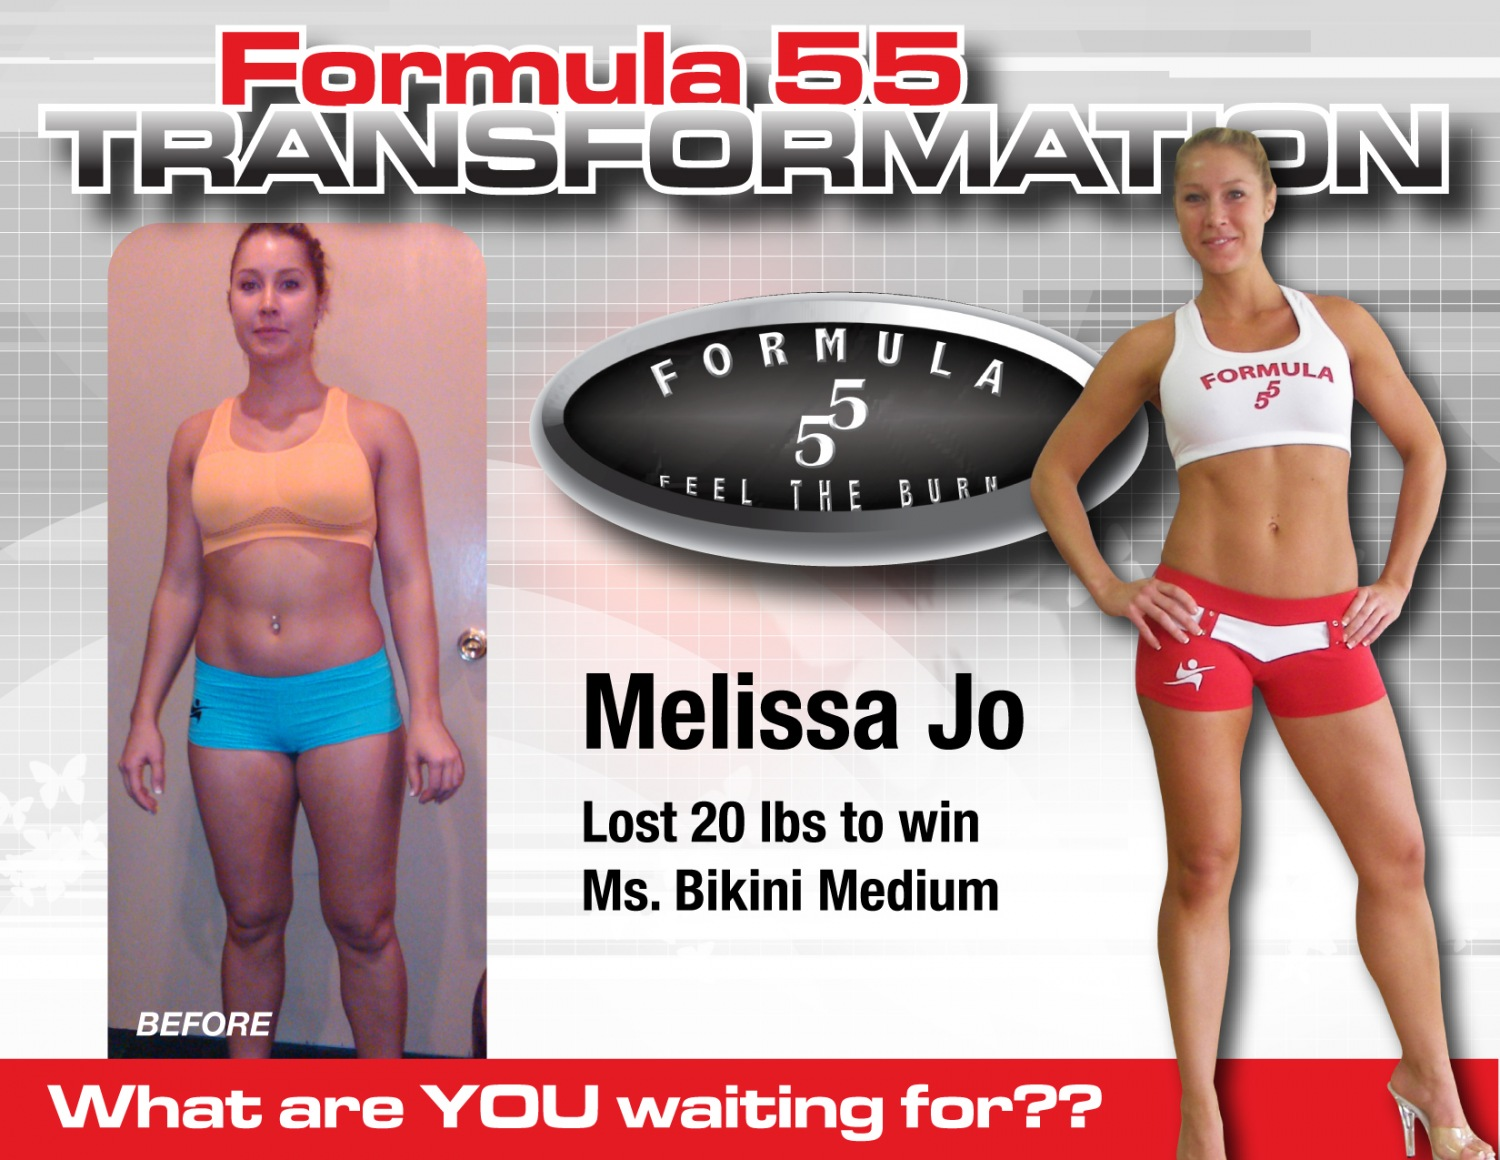 form_55_Transformation_Melissa_Jo.jpg